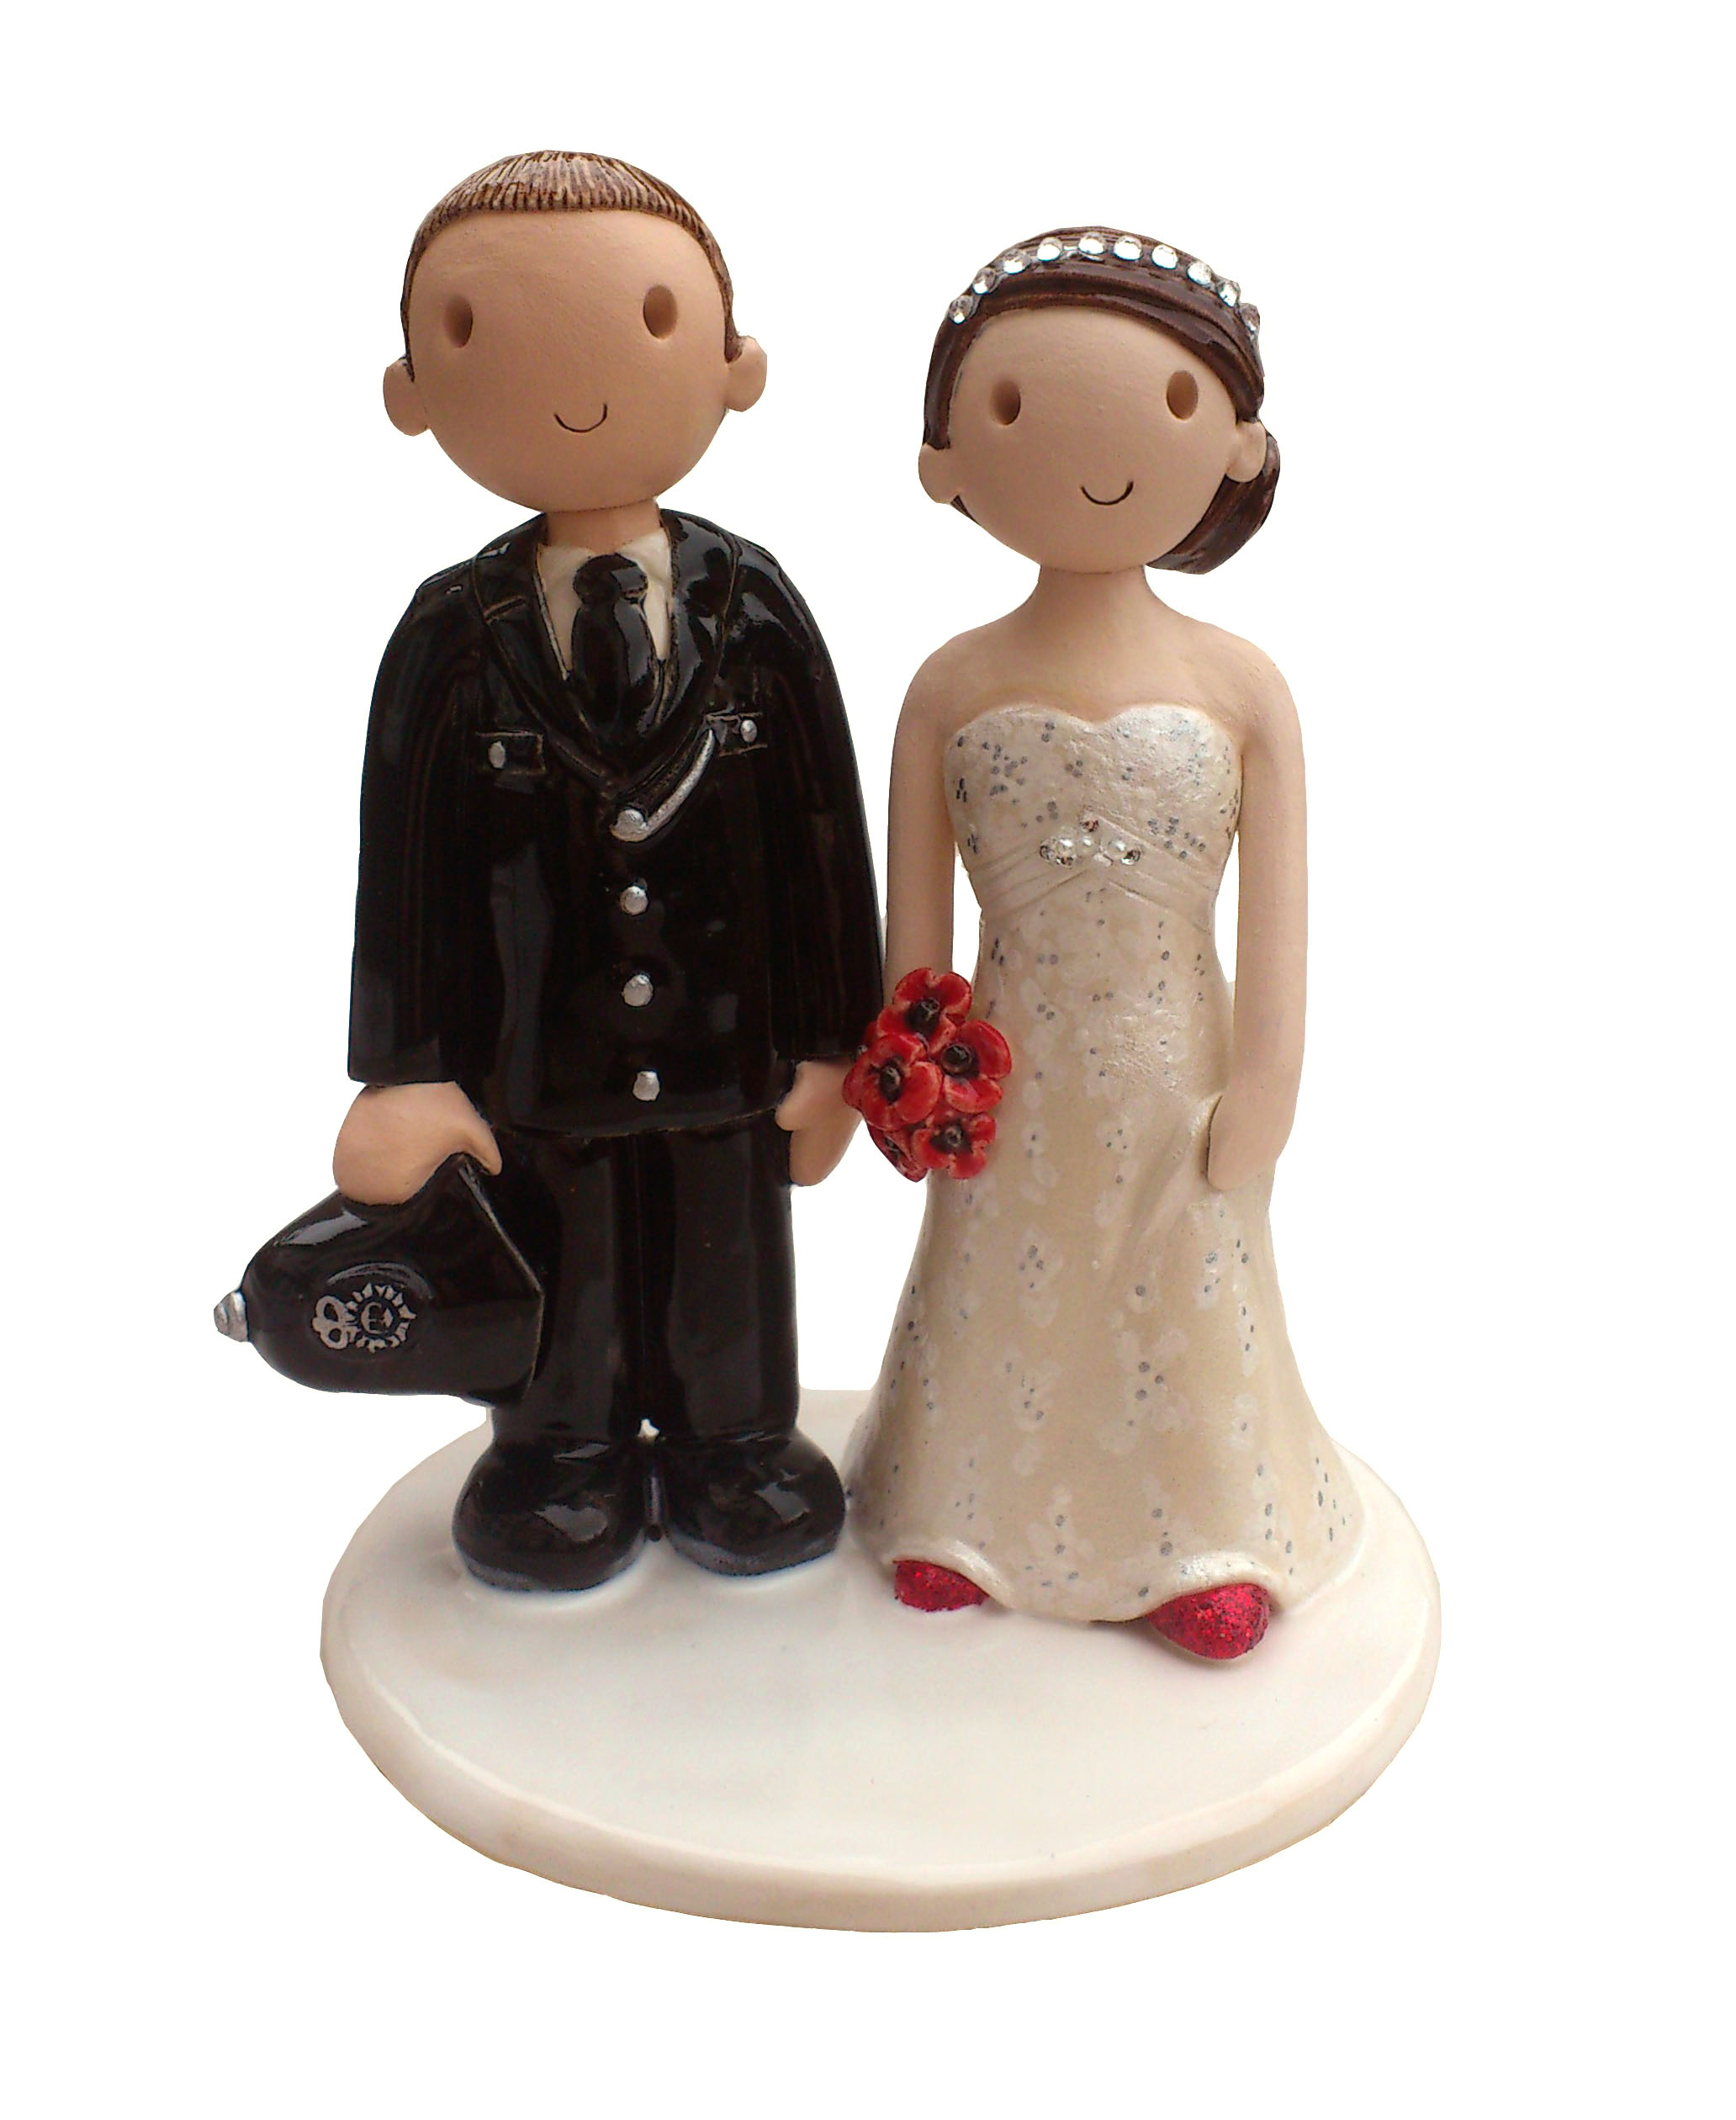 personalised clay wedding cake toppers uk wedding cake toppers made personalised wedding cake 18210